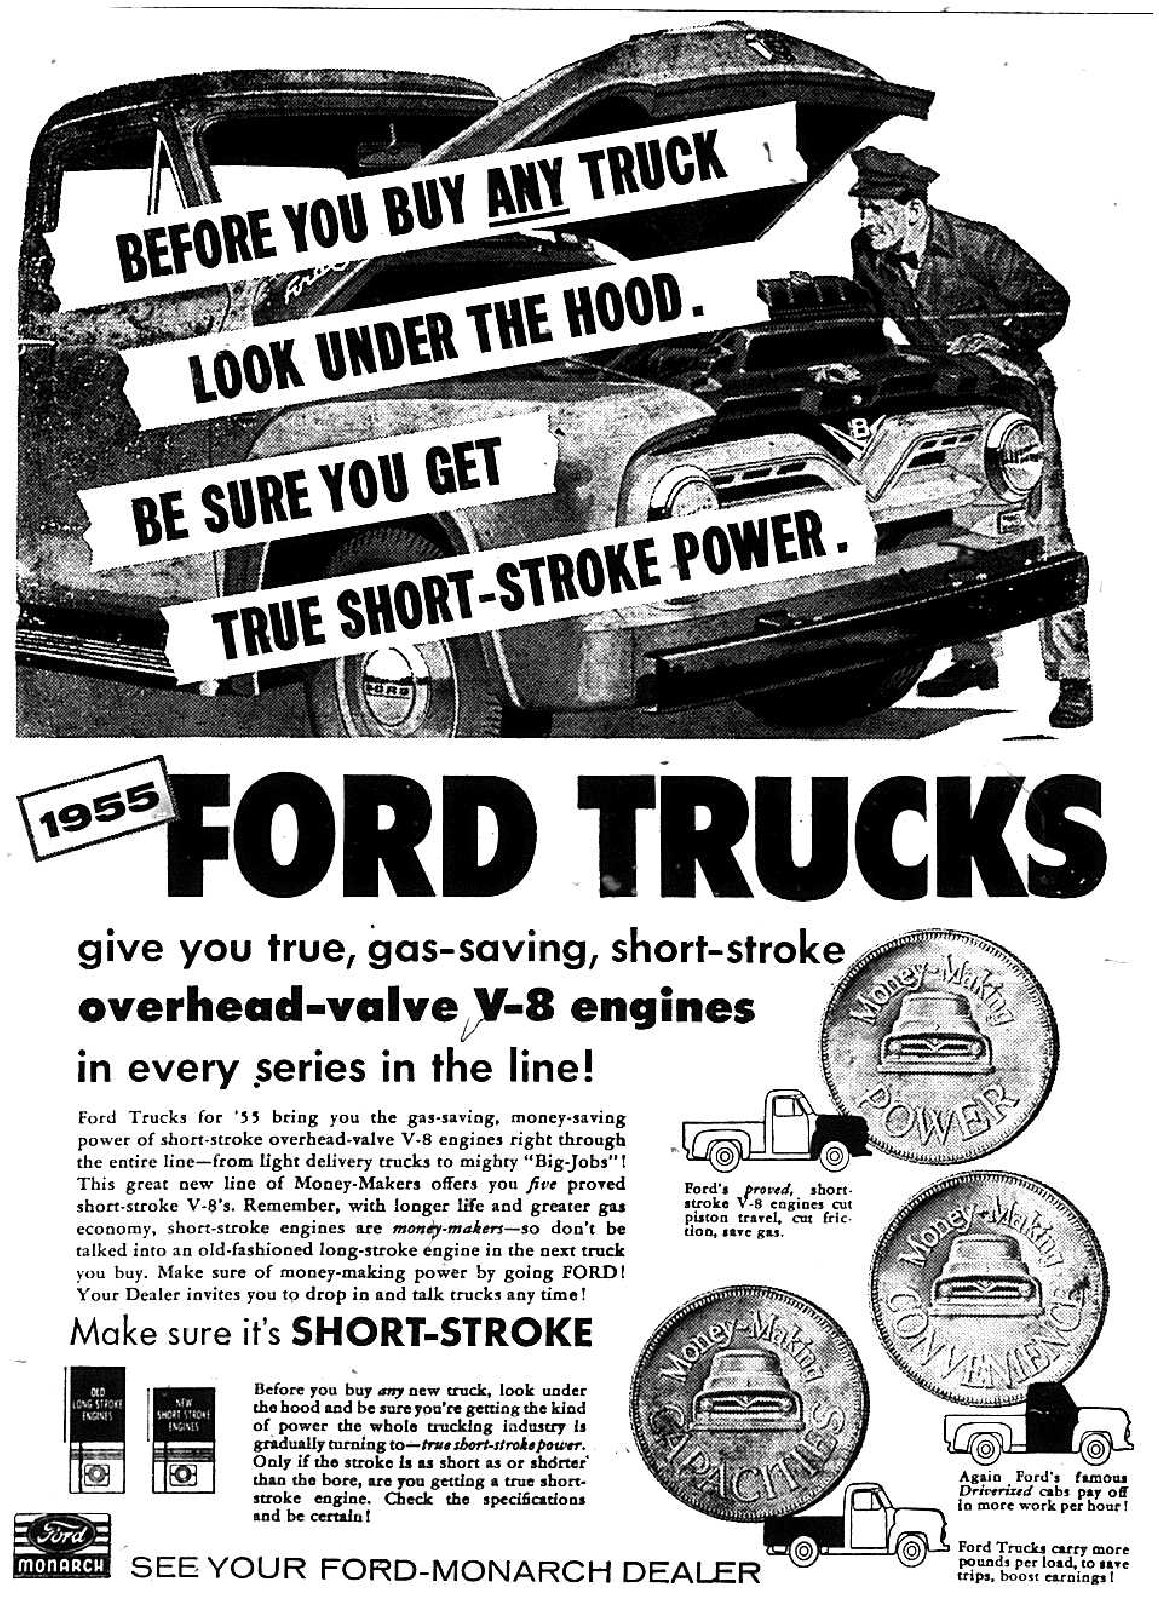 Ford Trucks Advertisement, 1955